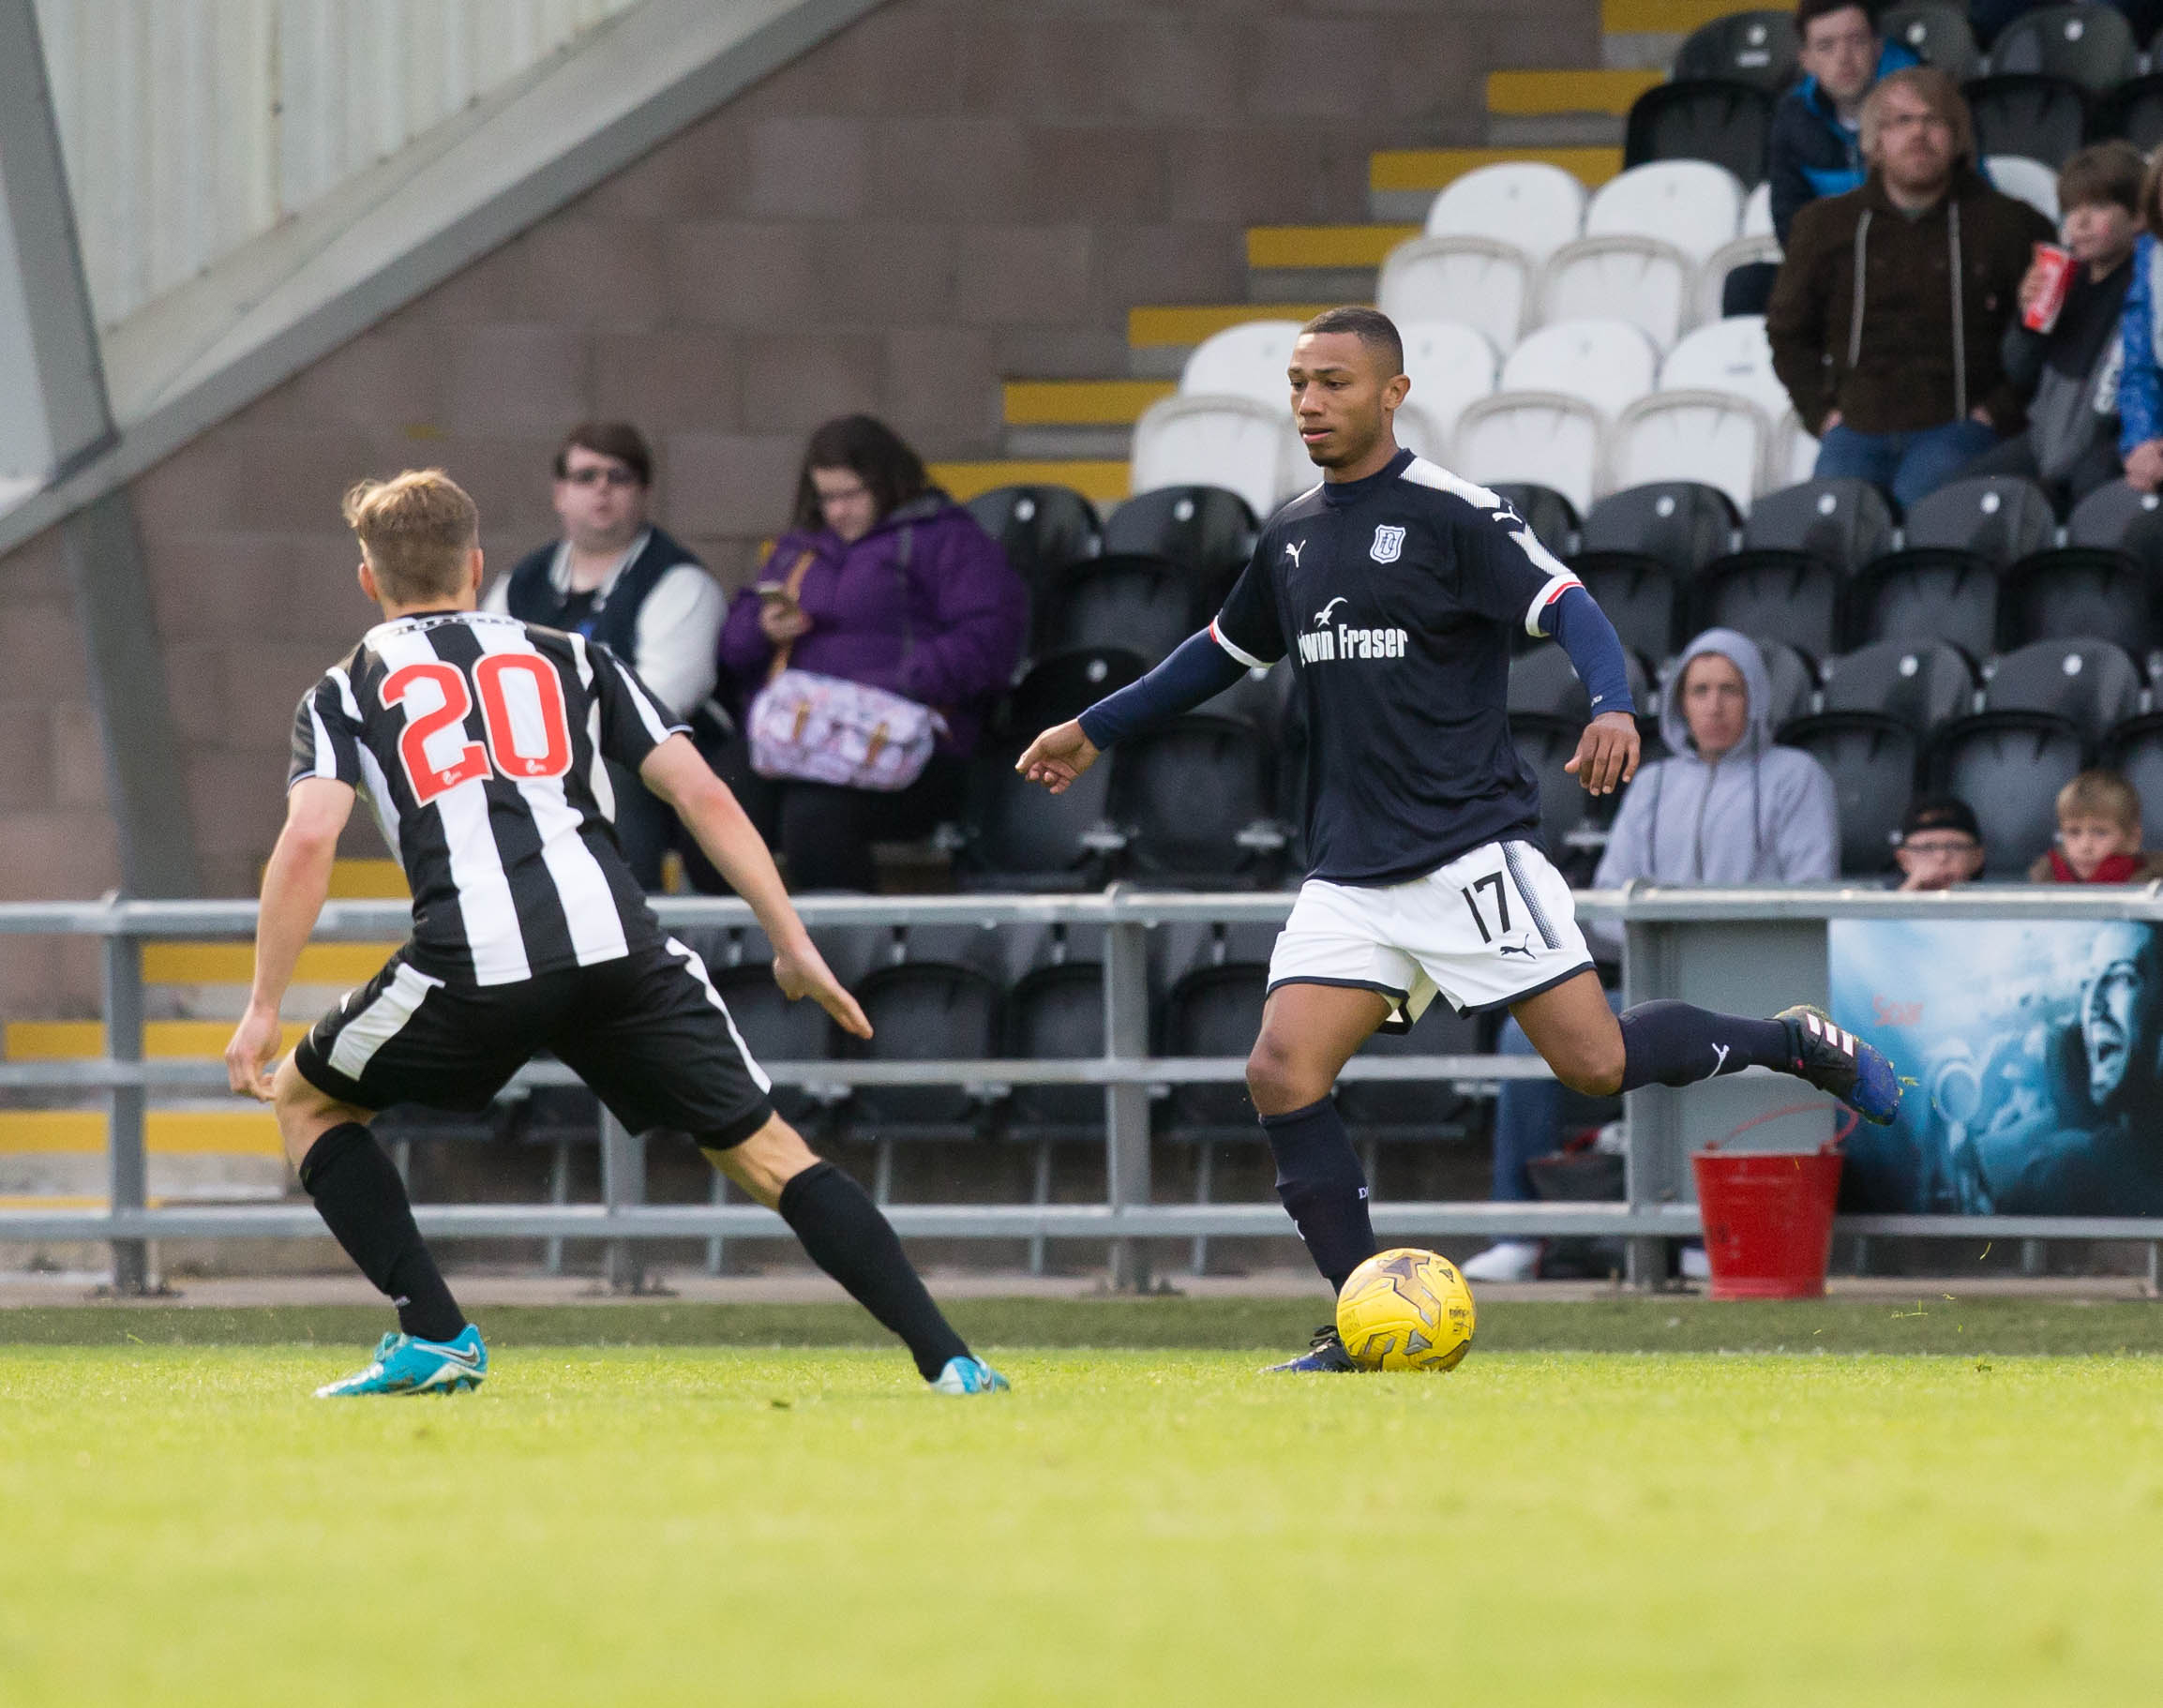 Crescendo van Berkel in action as a trialist for Dundee.